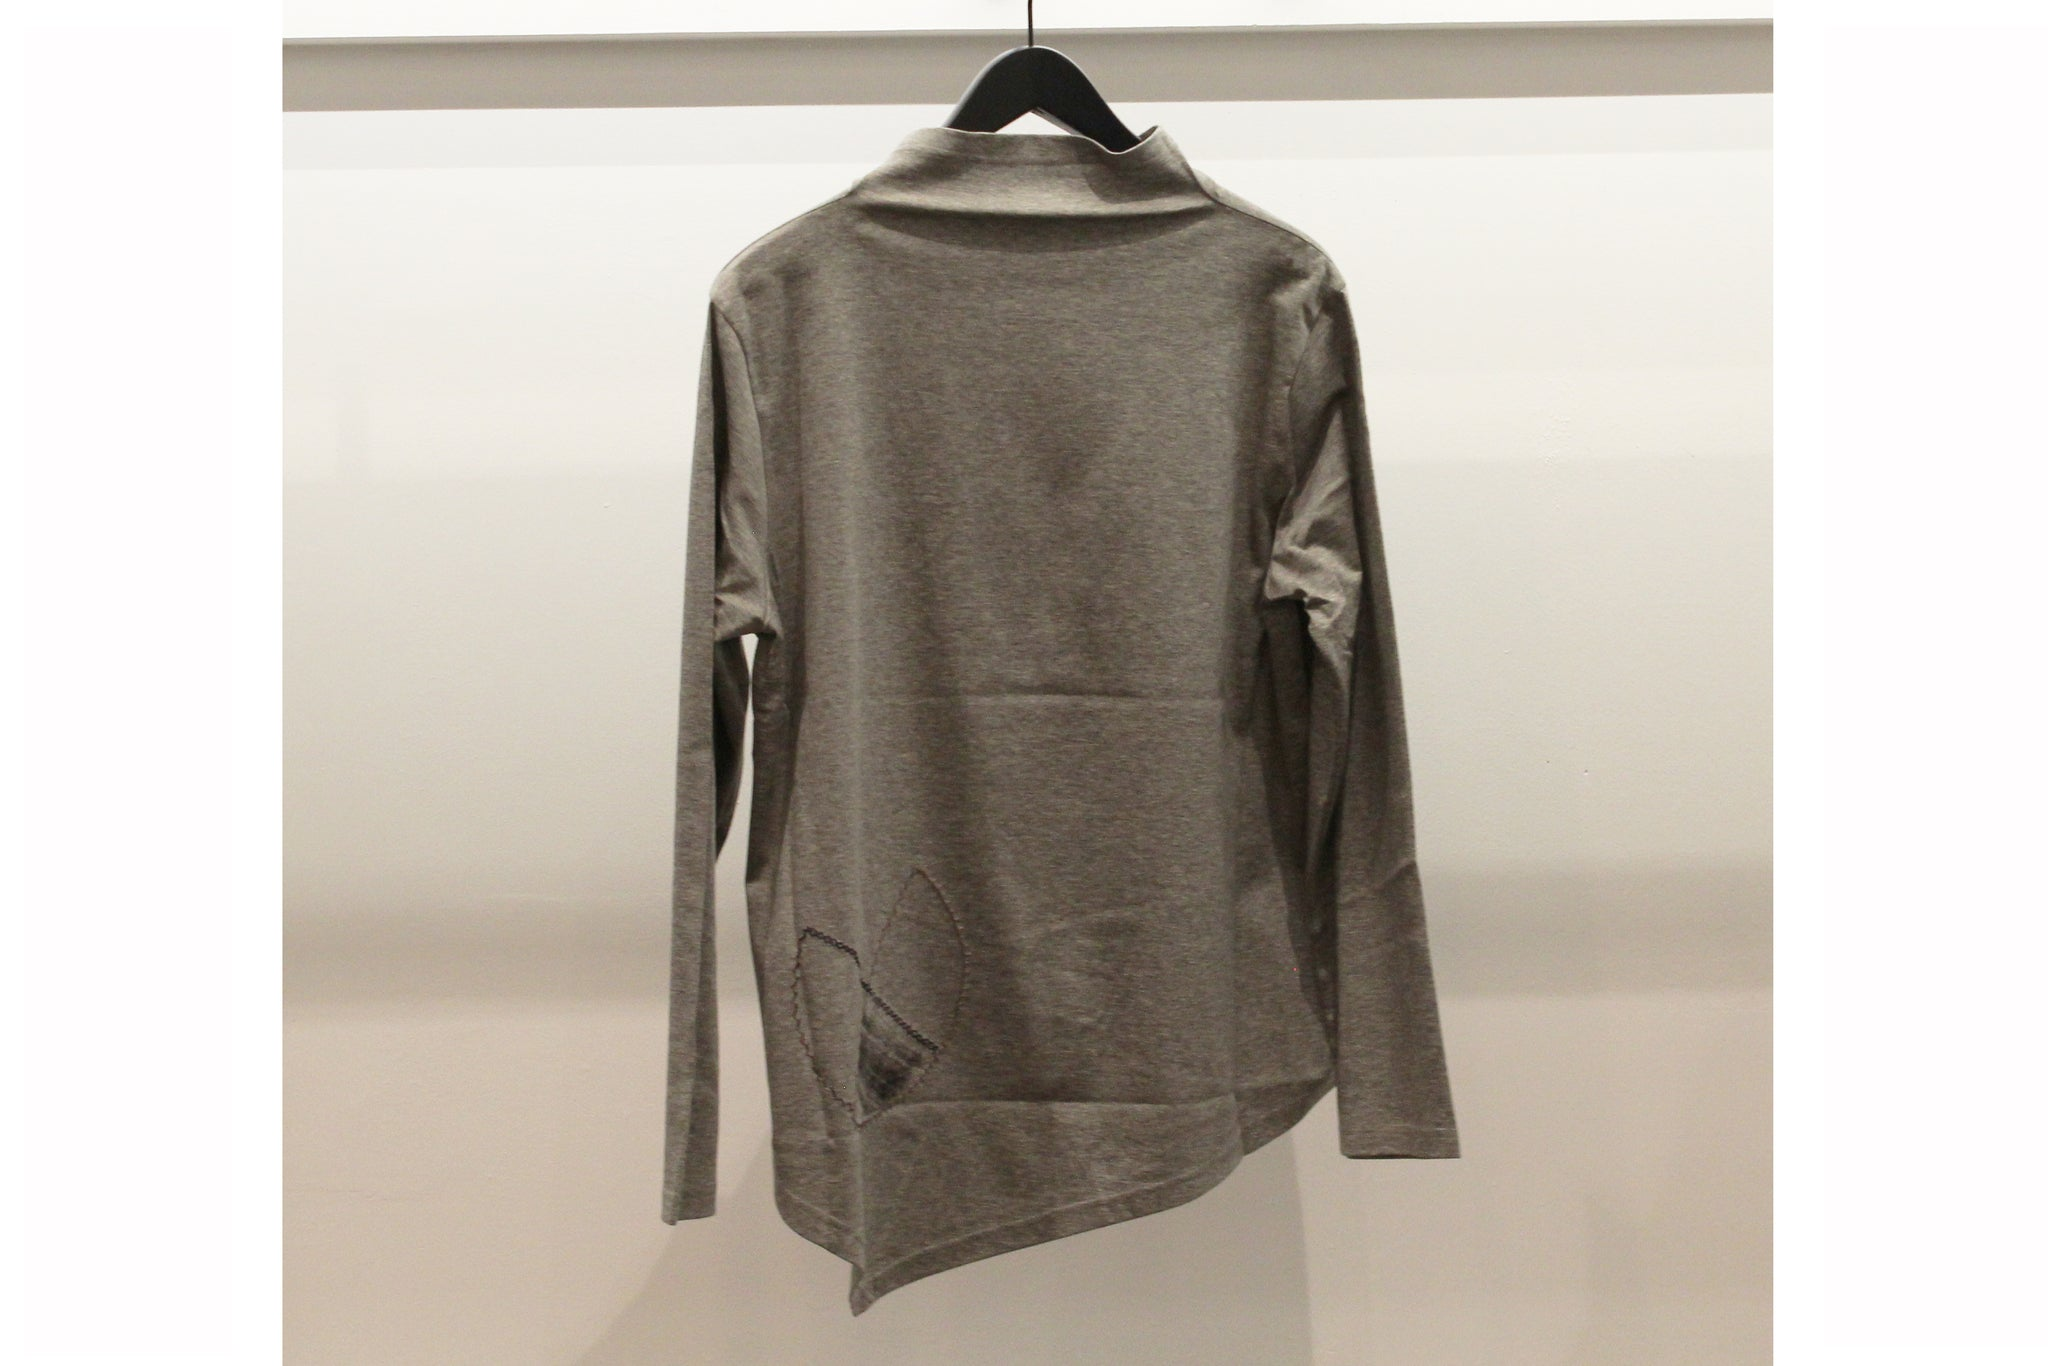 JI-U Grey Geometric Pattern Long Sleeve Top